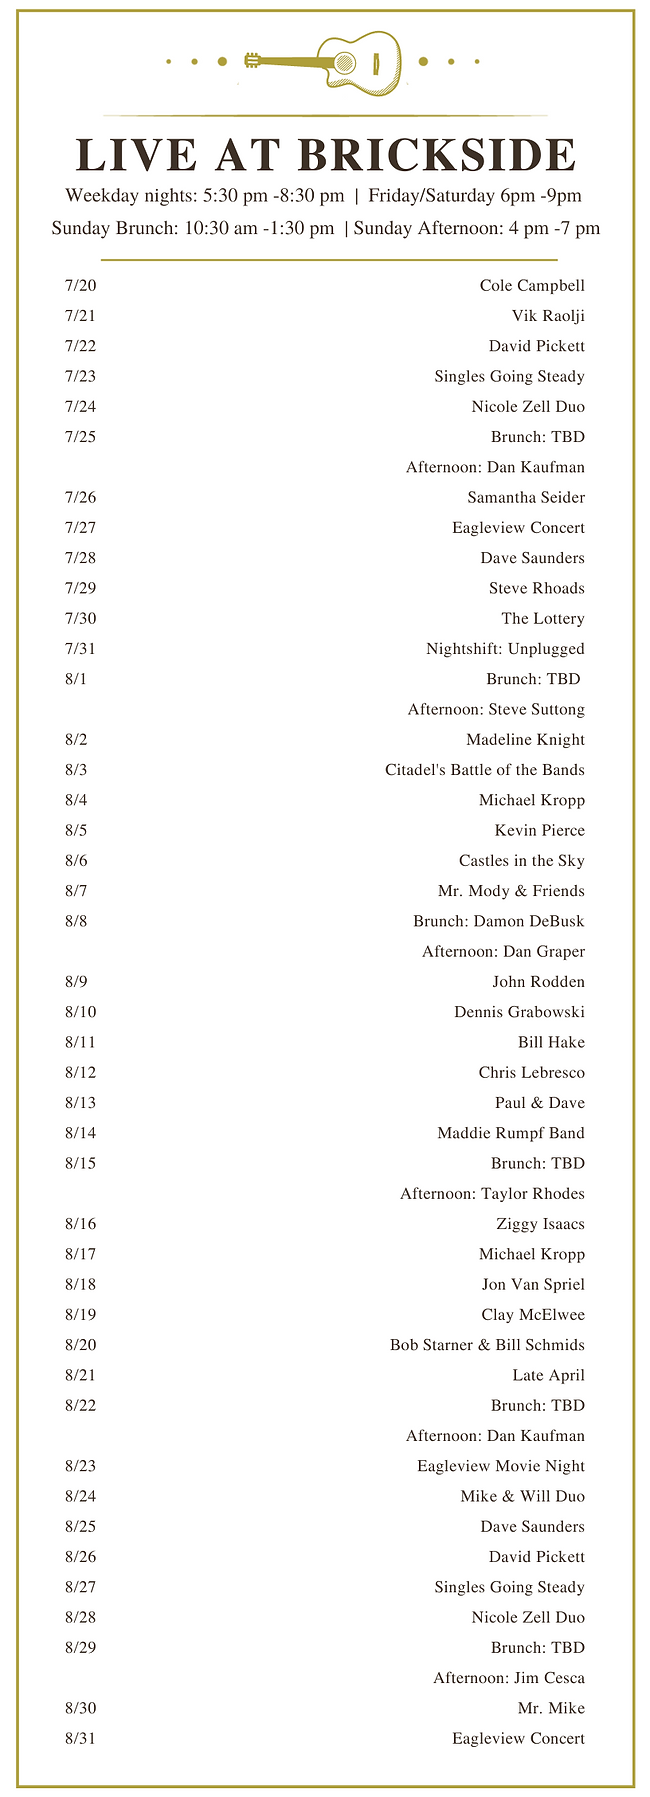 Brickside Live Music Schedule (6).png